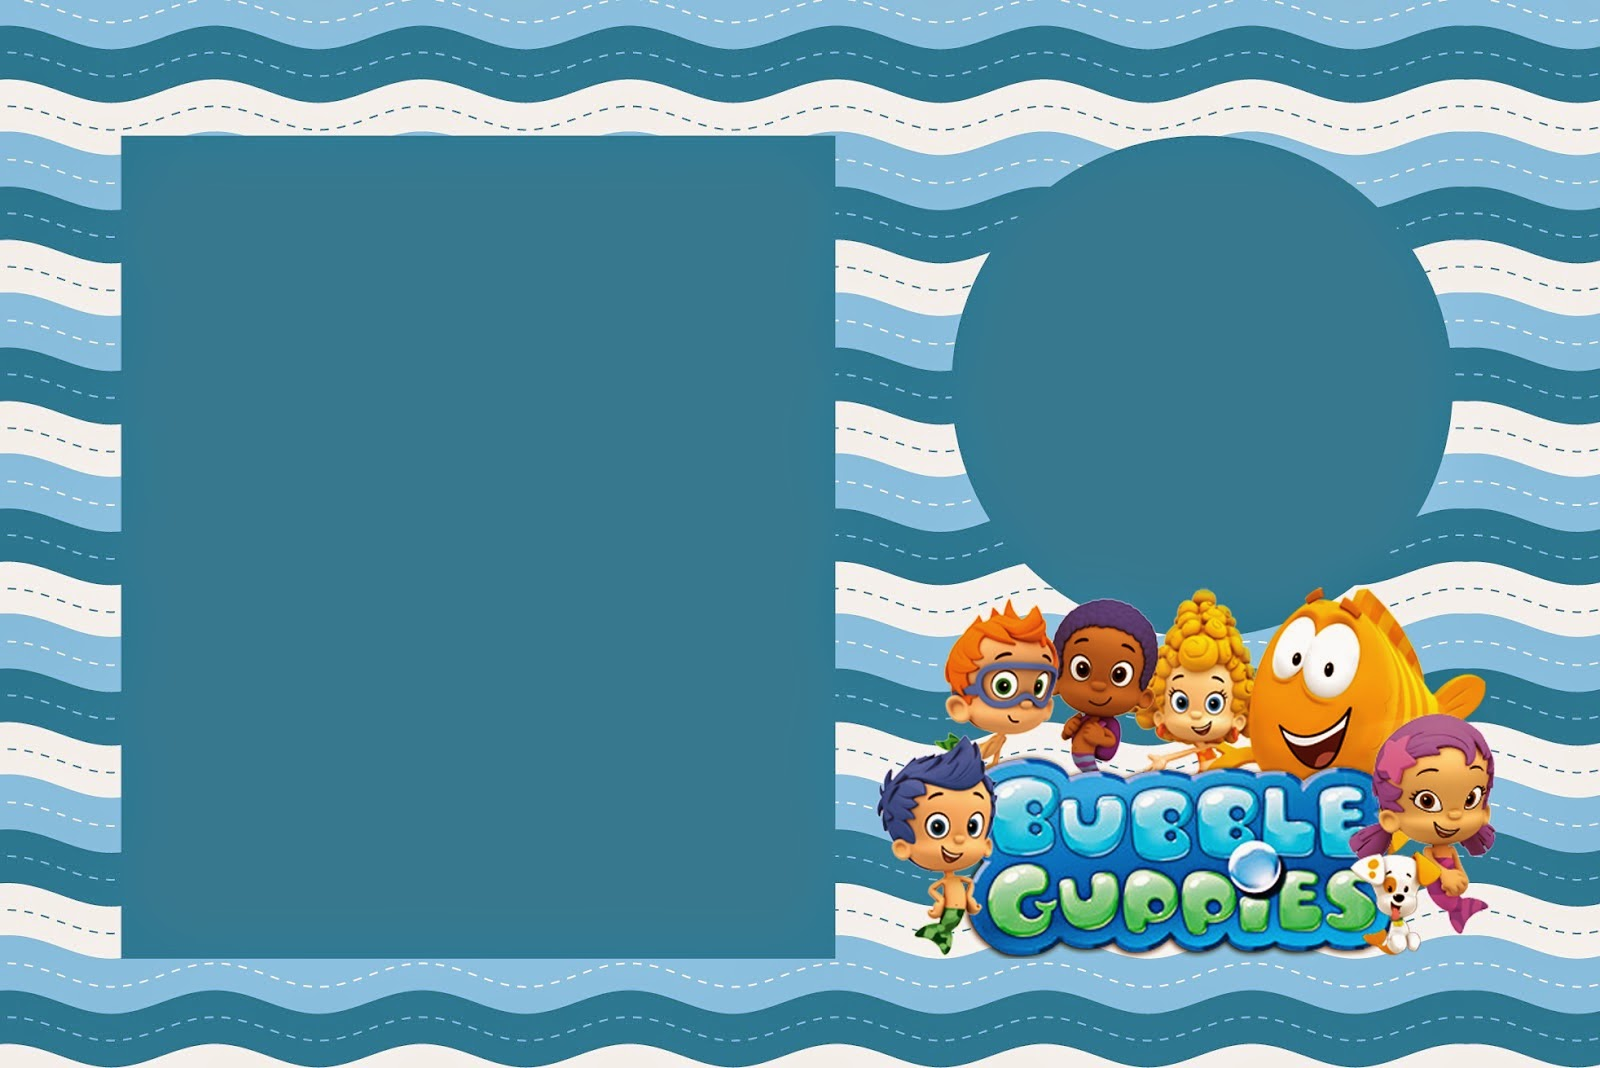 Bubble guppies free printable invitations is it for parties is it free is it cute has - Bubble guppies birthday banner template ...